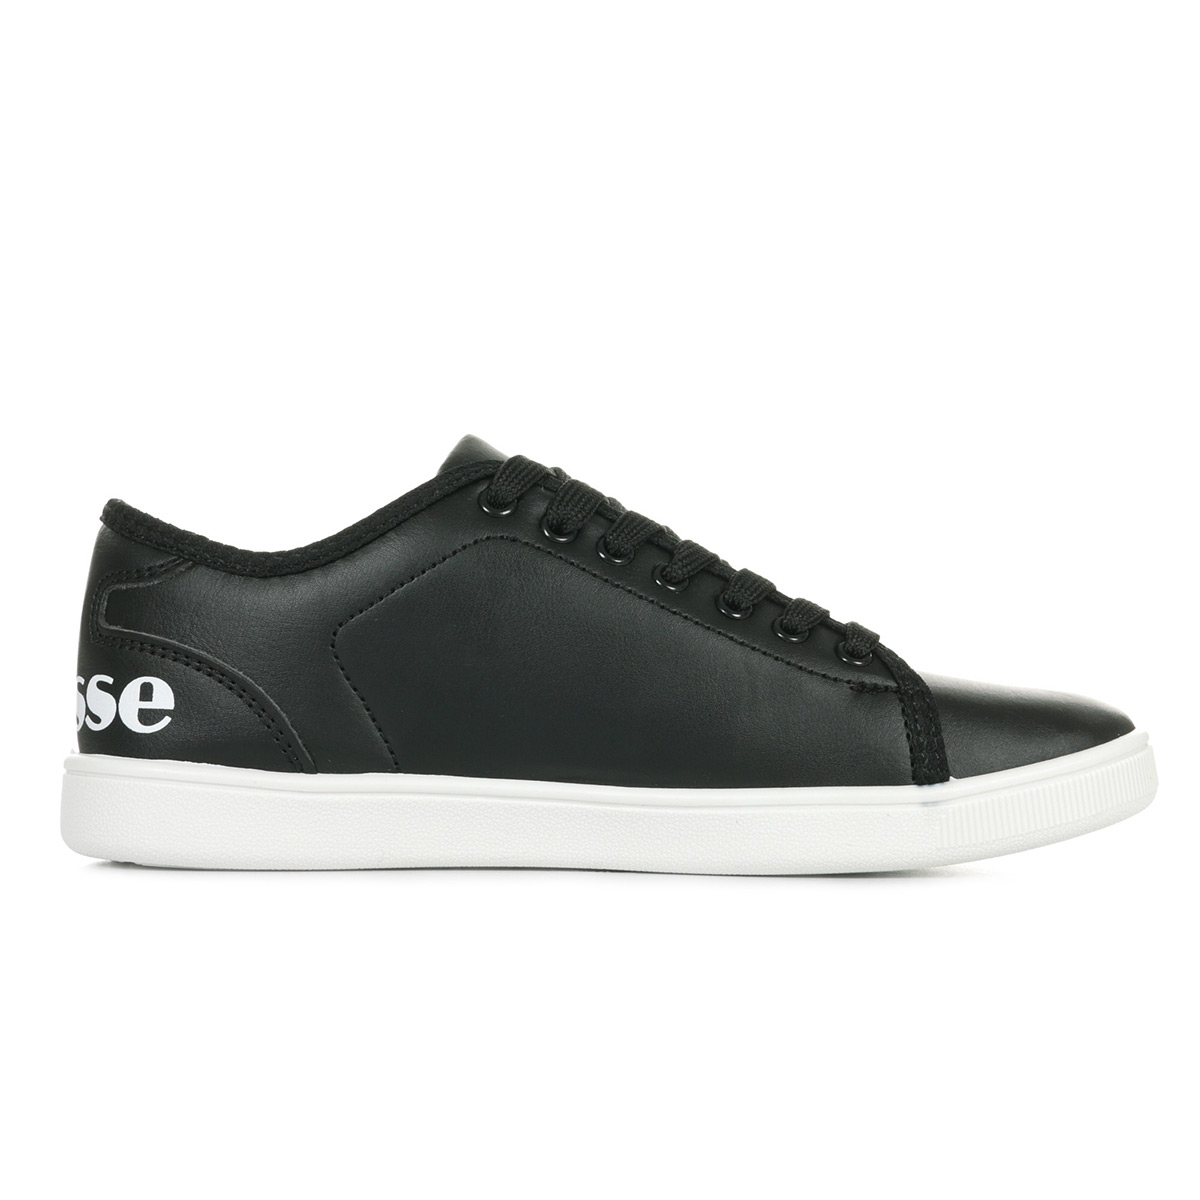 EL82941101 mode Enzo Black Baskets femme Ellesse qBEw0x41q